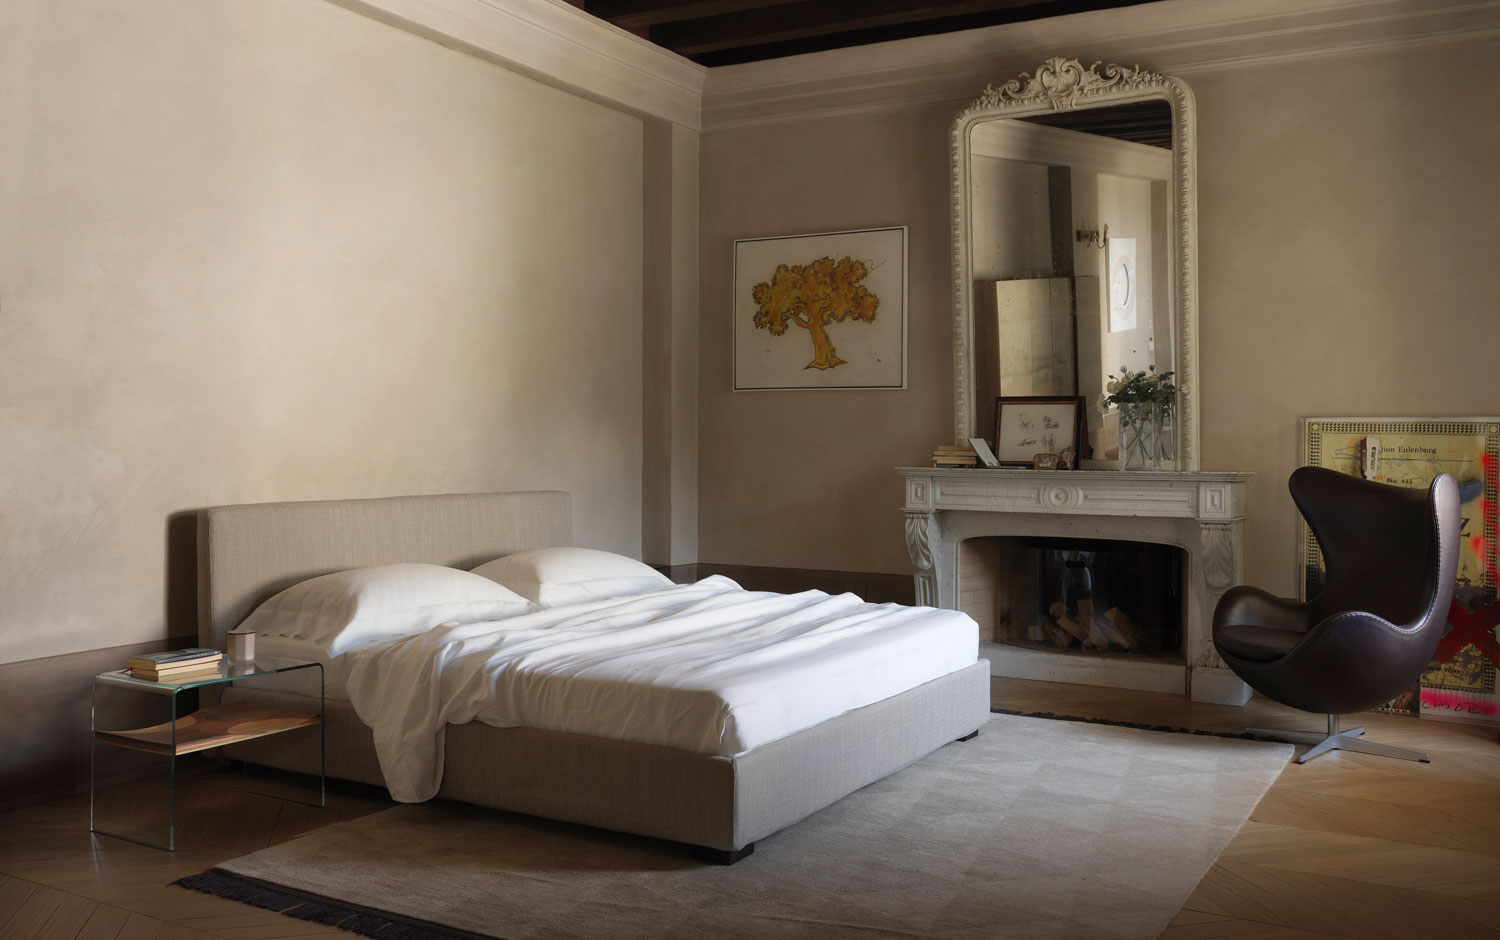 Lipari bed in a bedroom